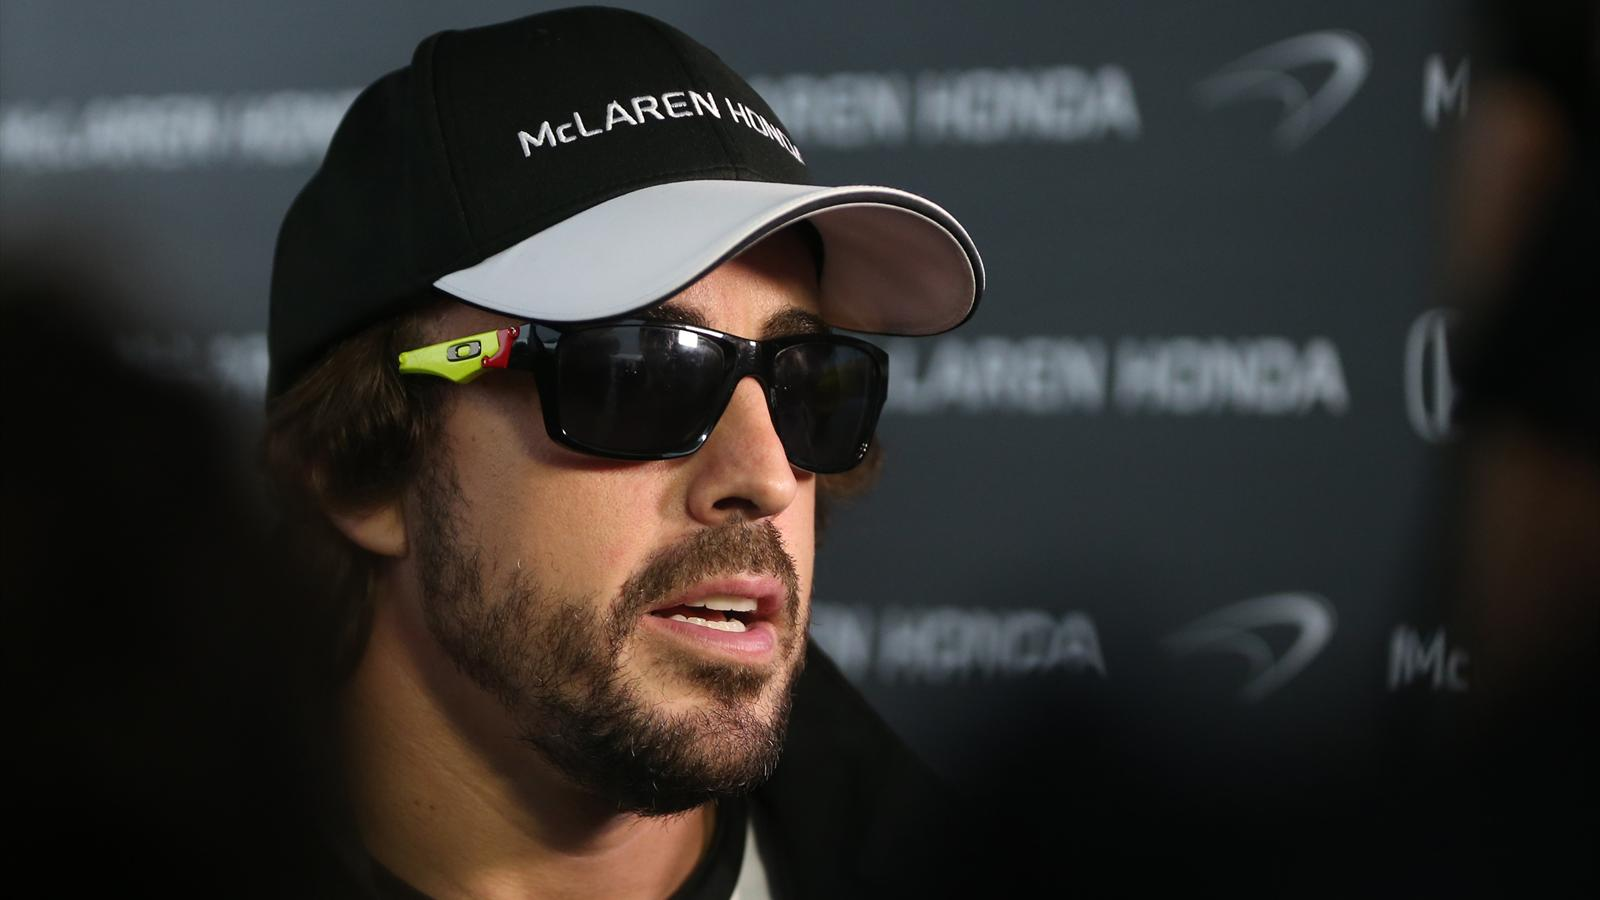 Fernando ALonso (McLaren) - GP of Japan 2015